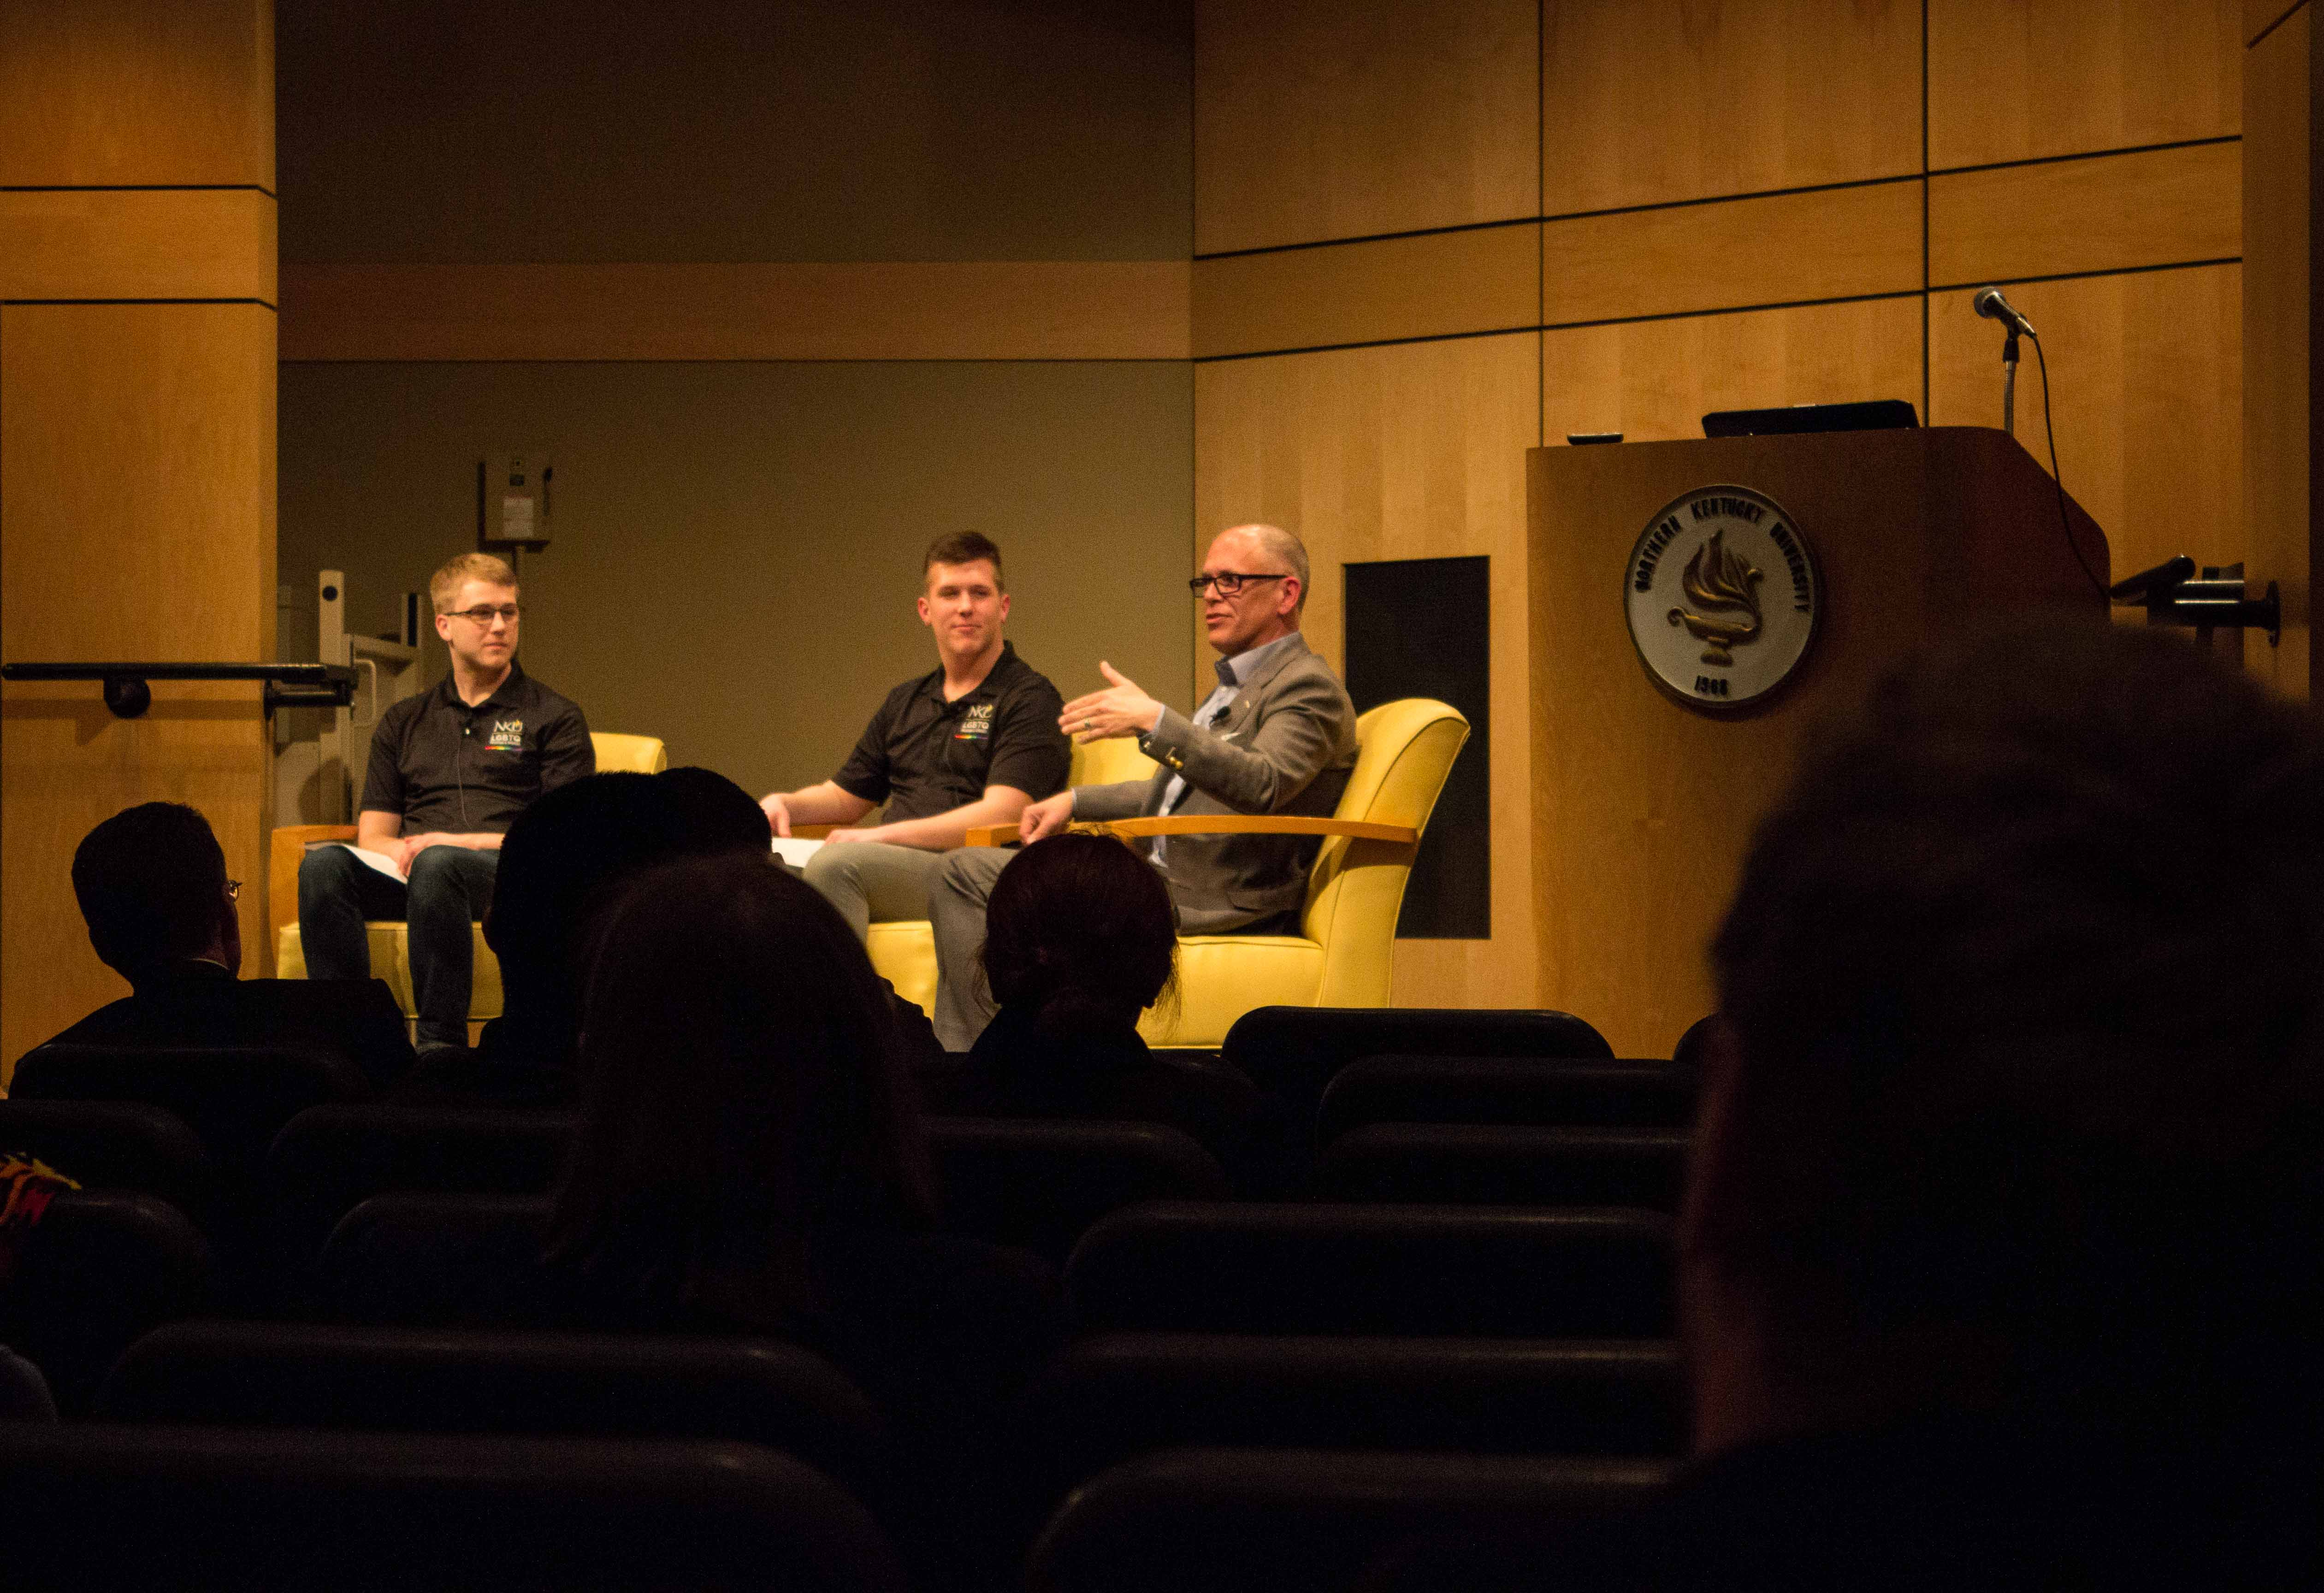 Jim Obergefell speaks during NKU Pride Week. Obergefell notes that the fight is not over.